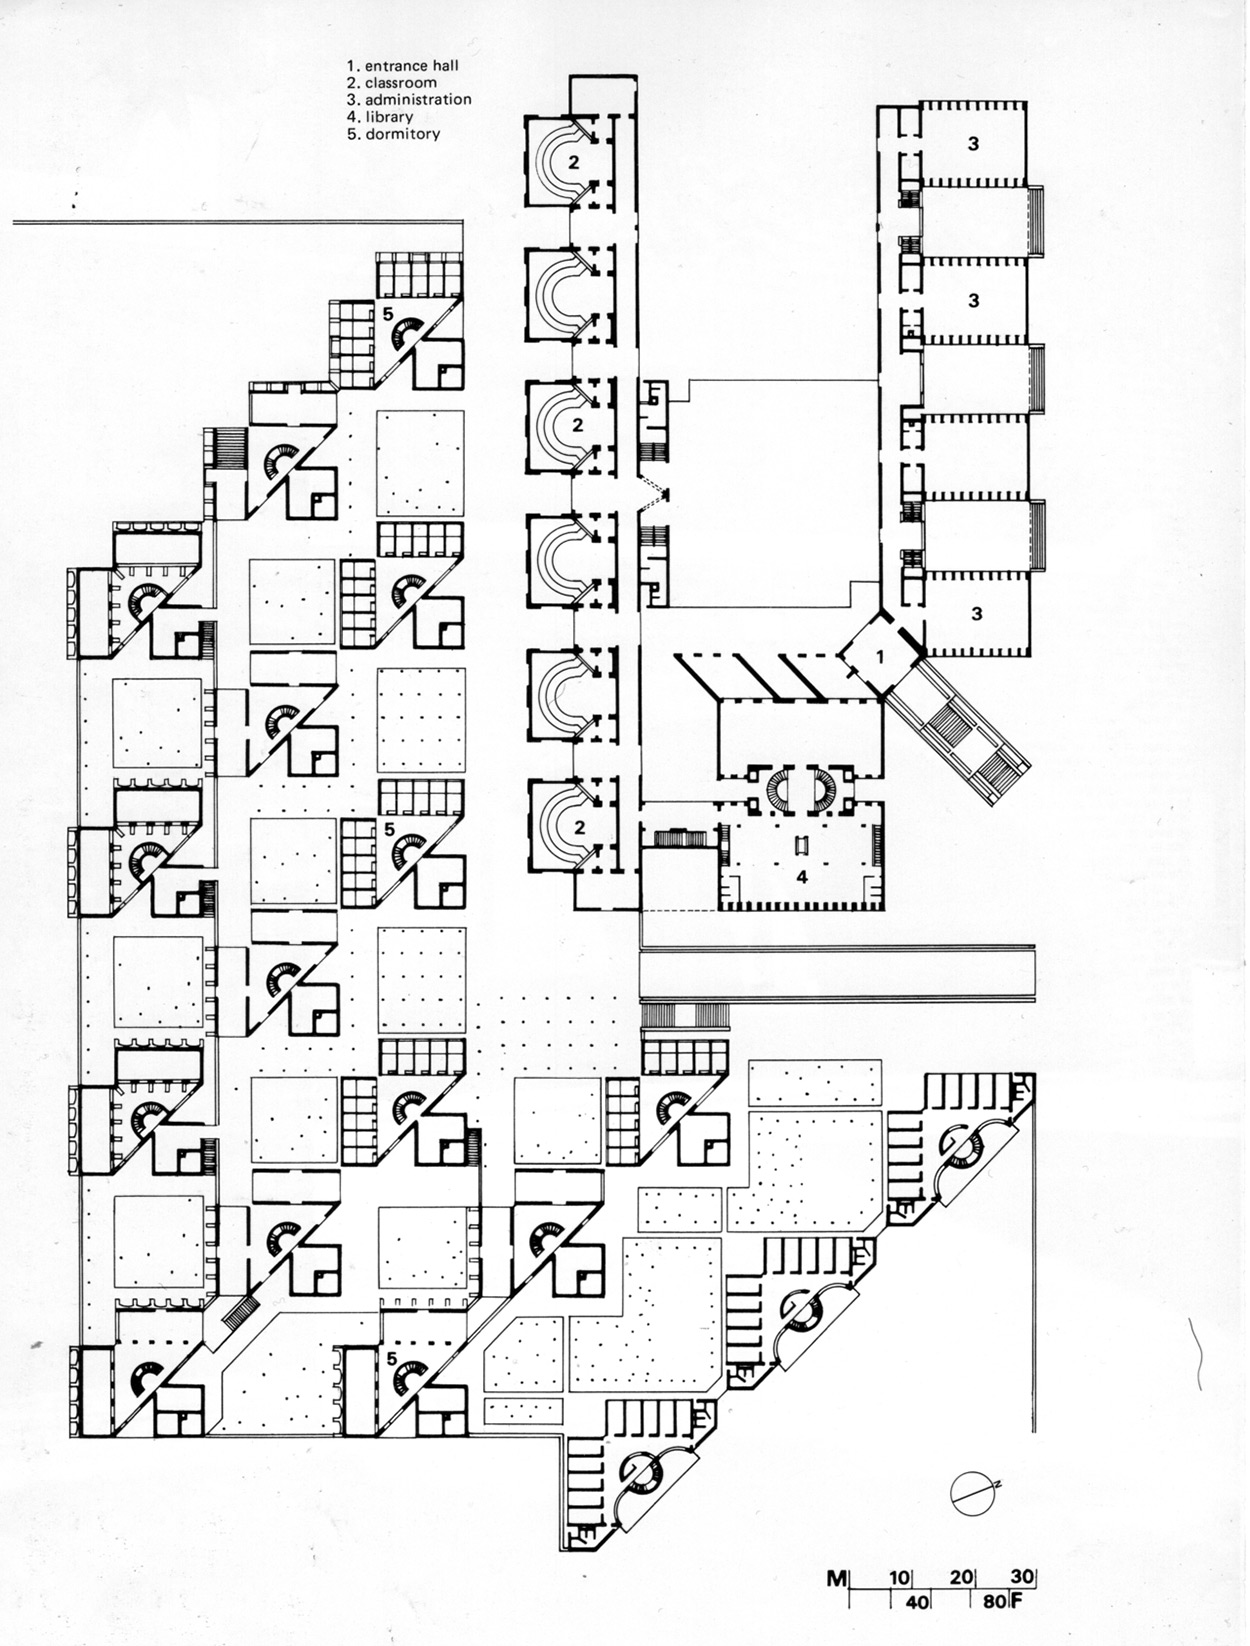 Floor Plan Indian Institute of Management by Louis Kahn